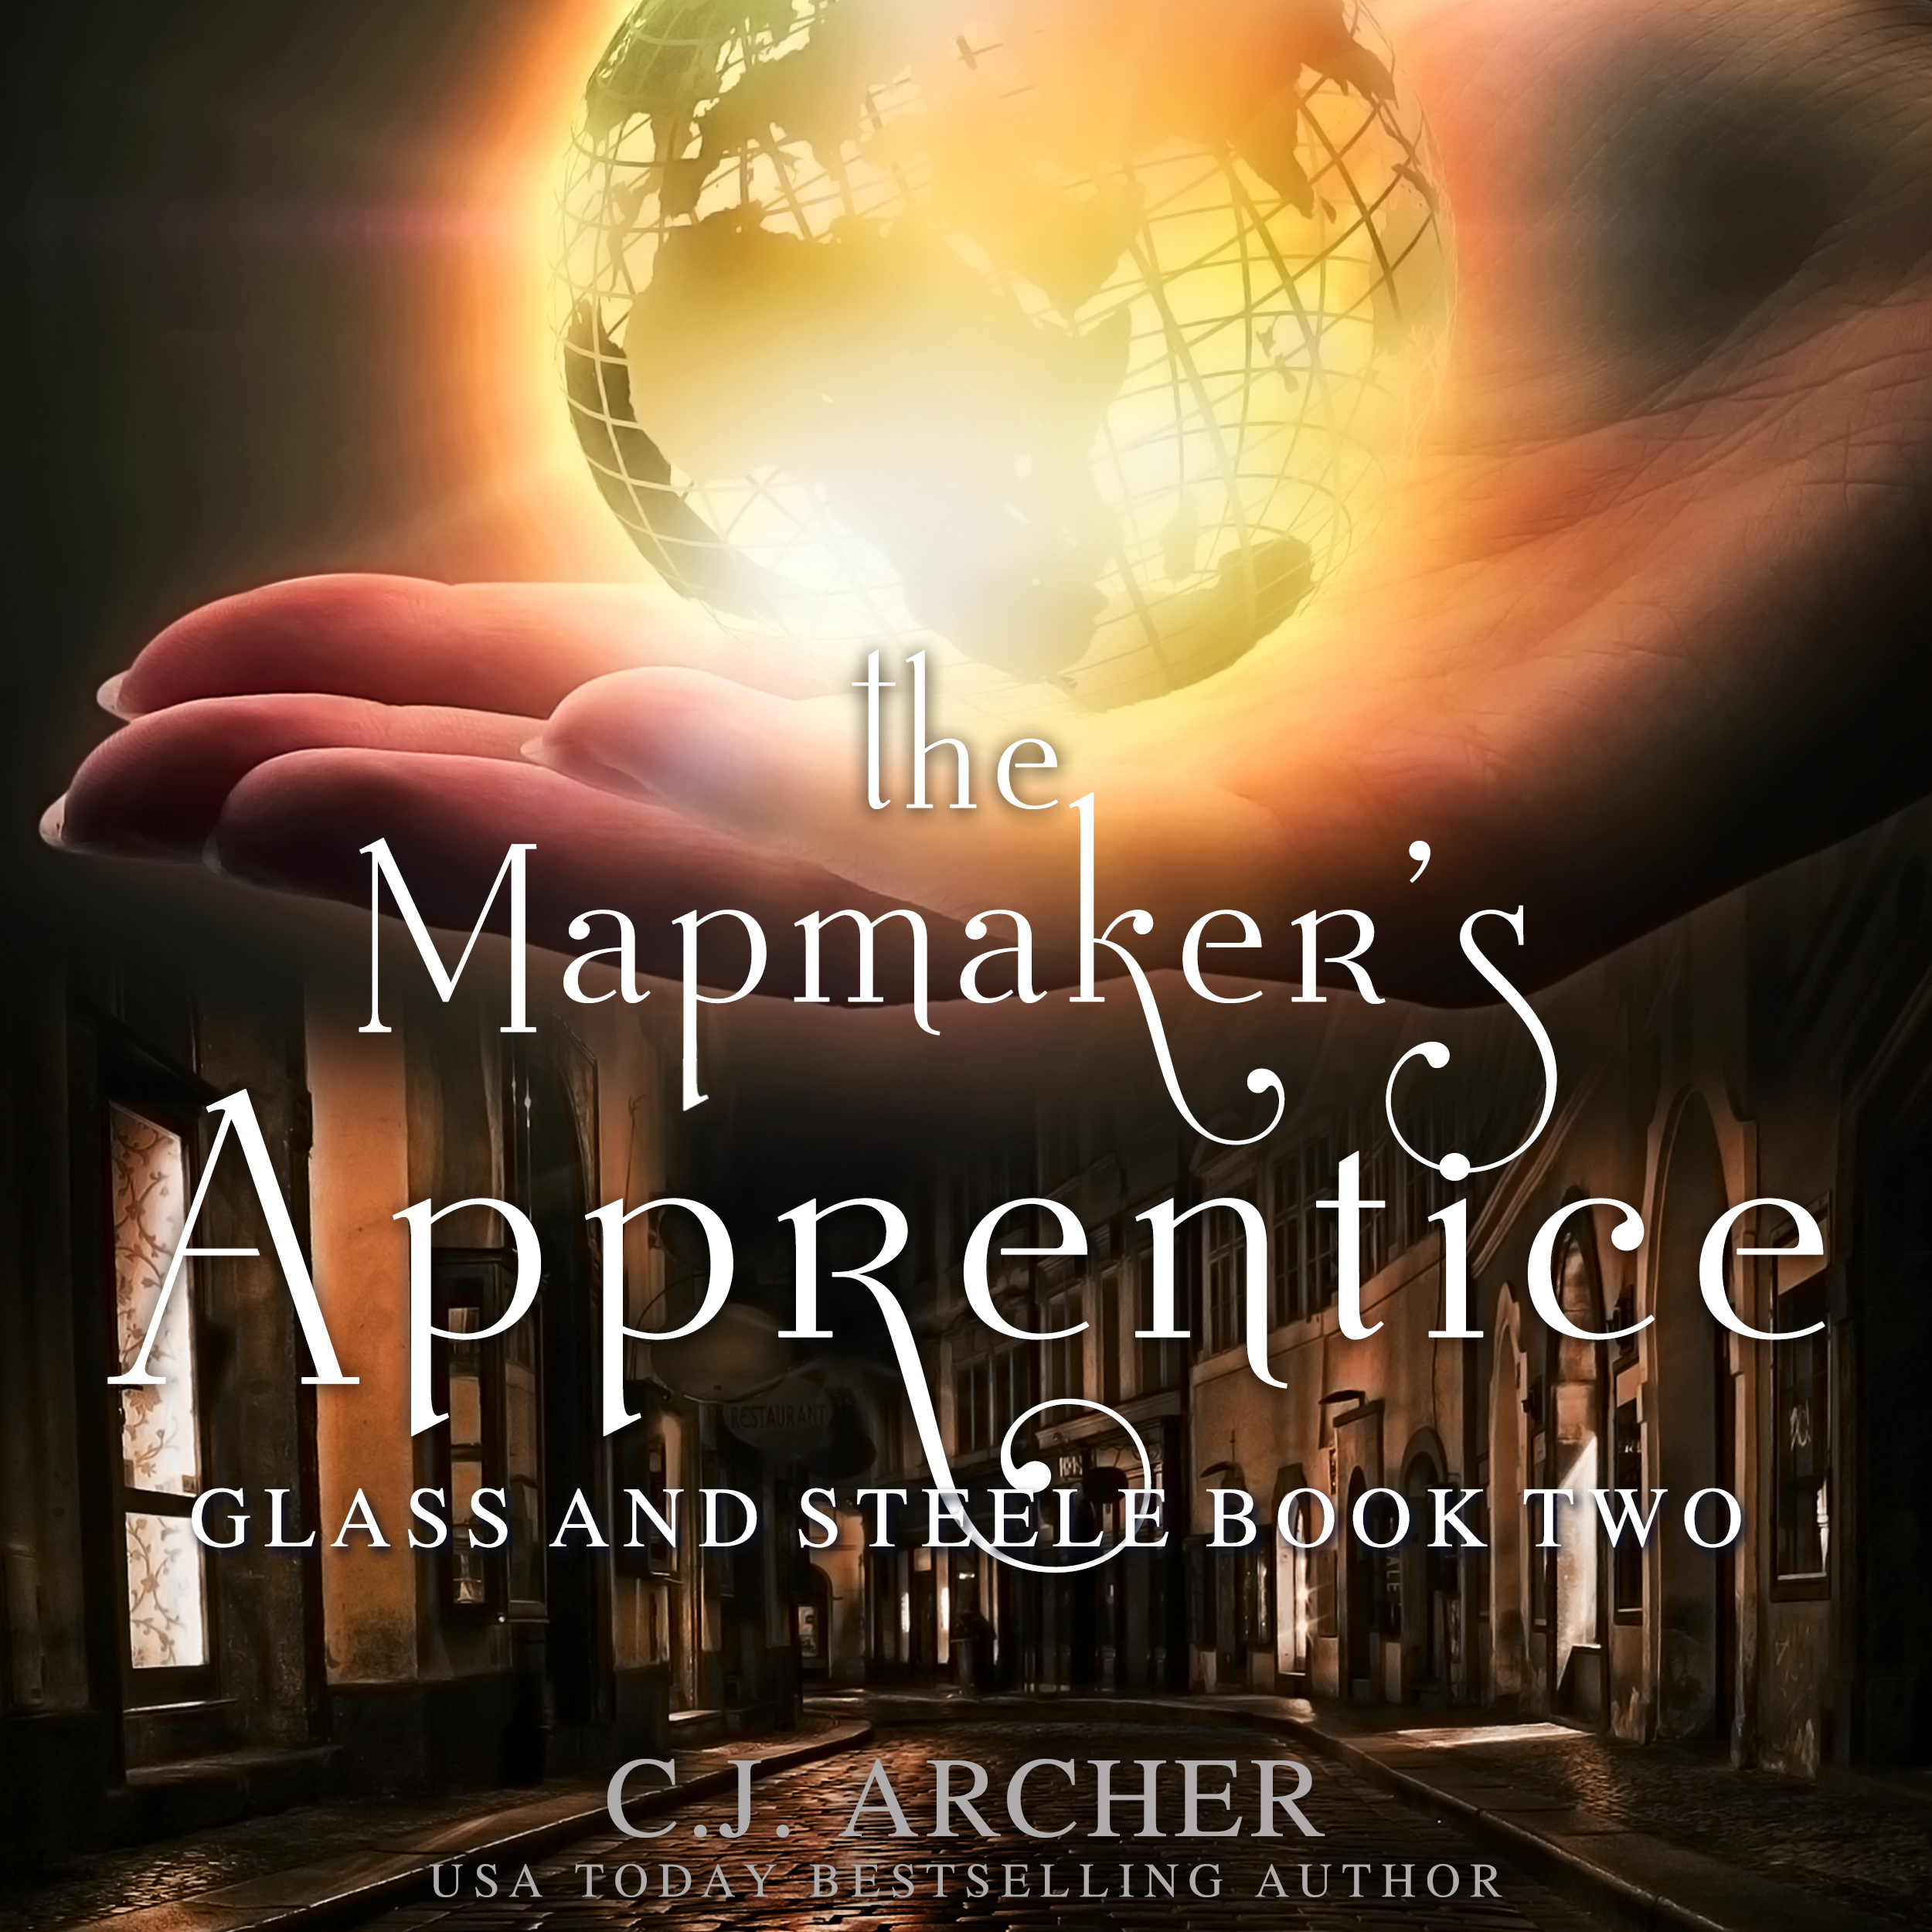 The Mapmaker's Apprentice audiobook by CJ Archer